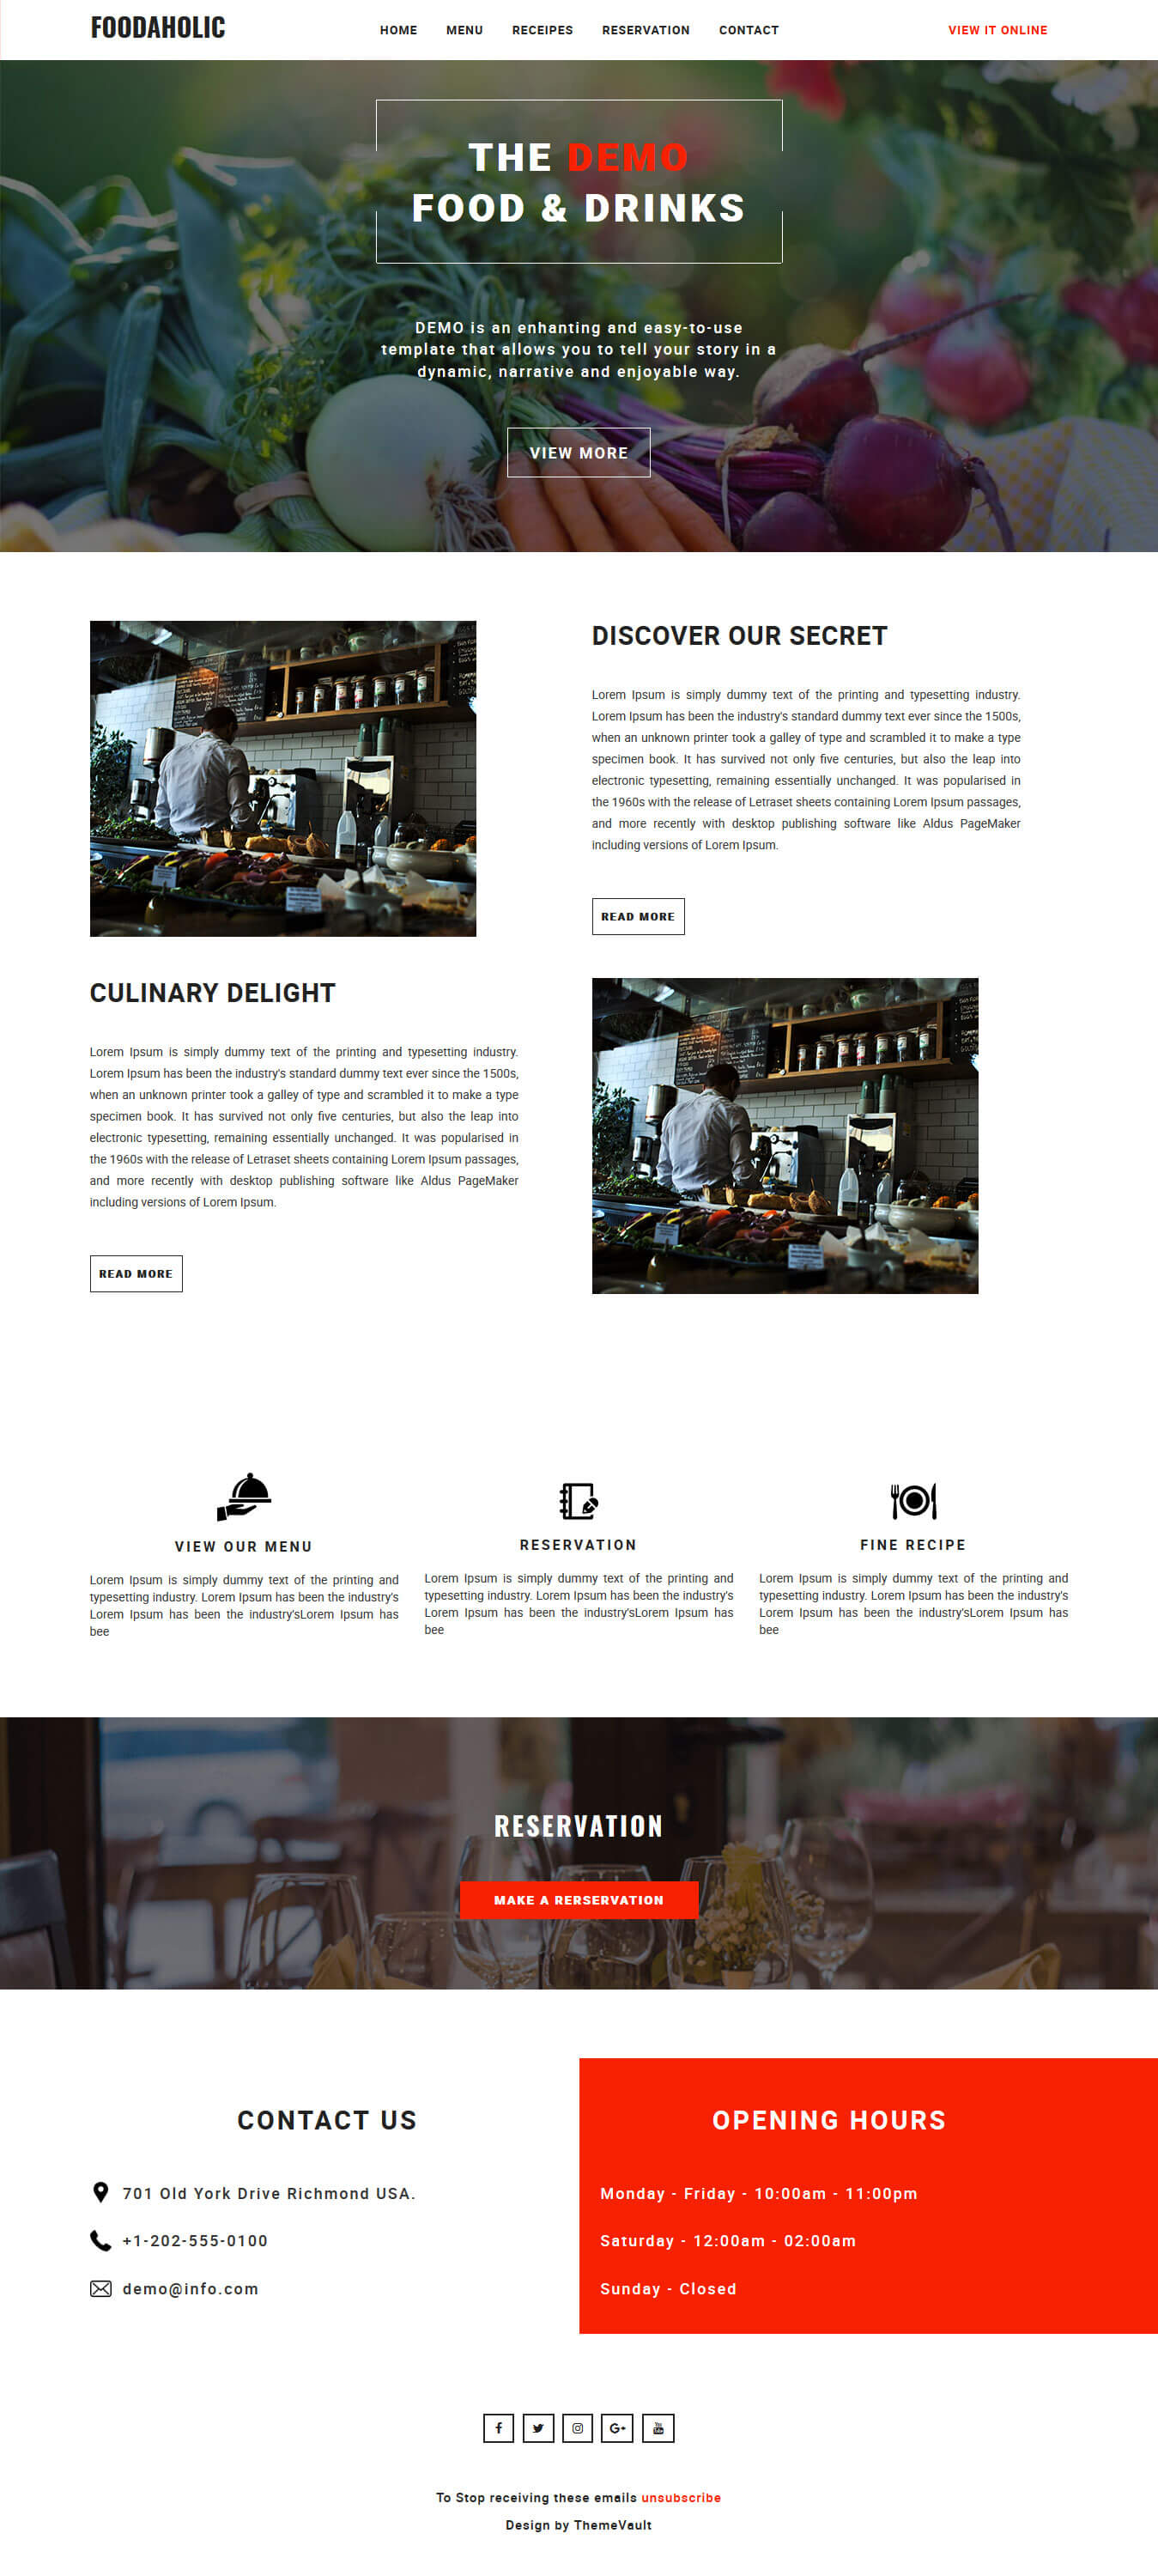 Foodaholic - Responsive HTML Email Template Free